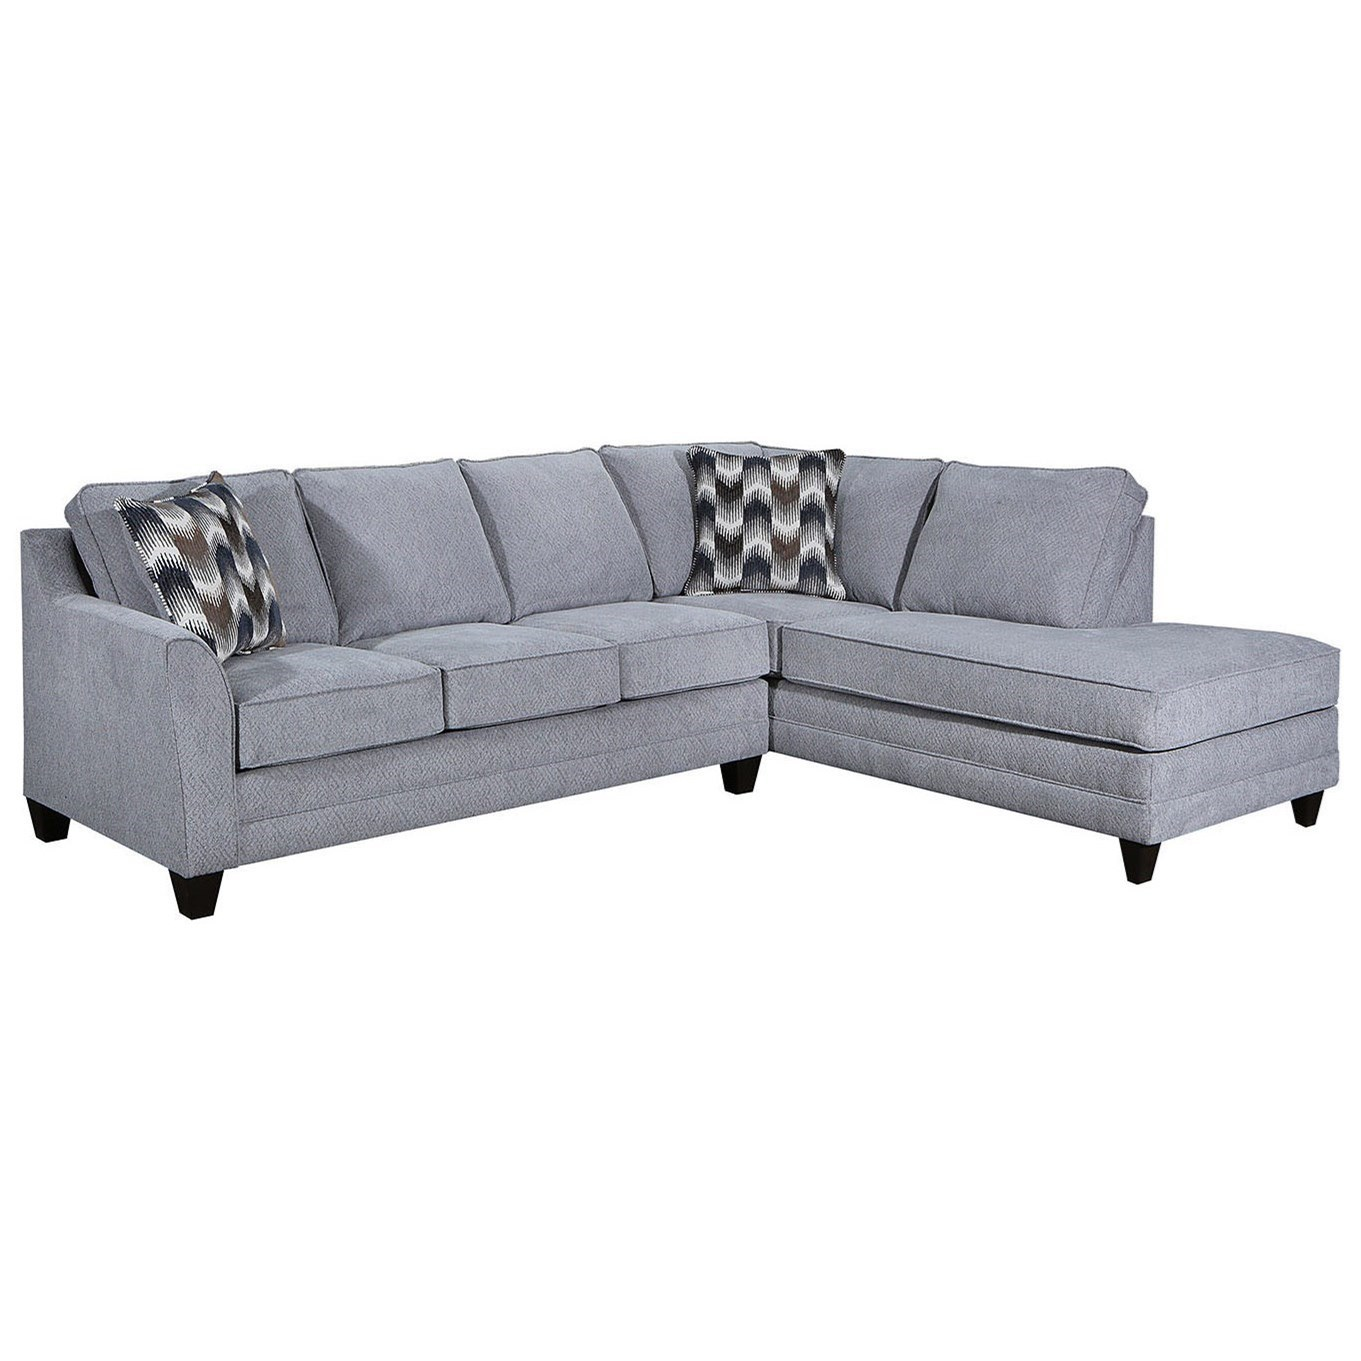 2013 2-Piece Sectional by Lane at Story & Lee Furniture